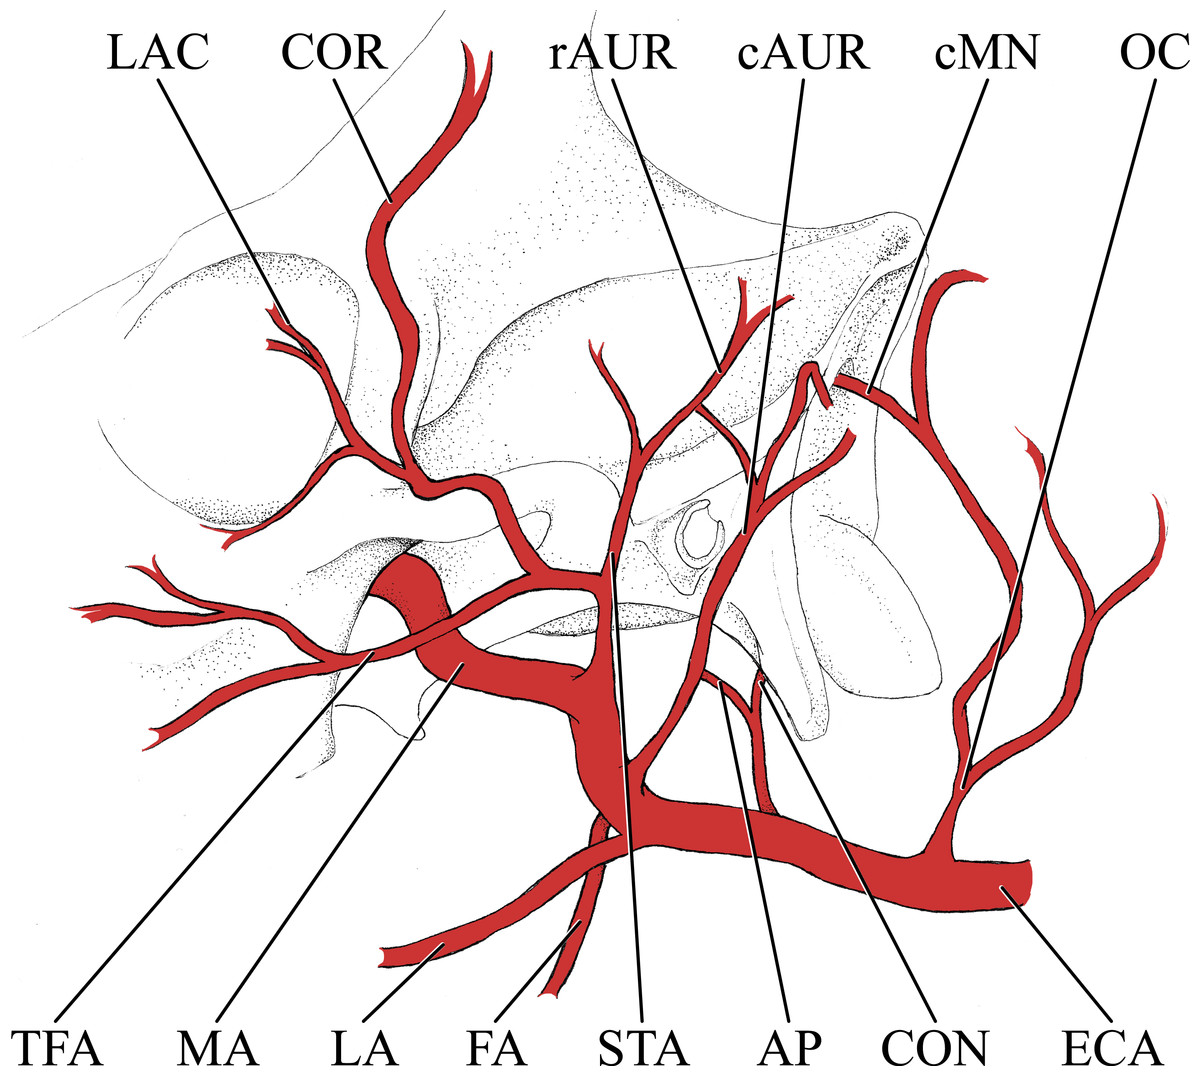 a parison of postnatal arterial patterns in a growth series of Bull Horns Hand Sign simplified illustration of the major branches of the external carotid artery of the giraffe